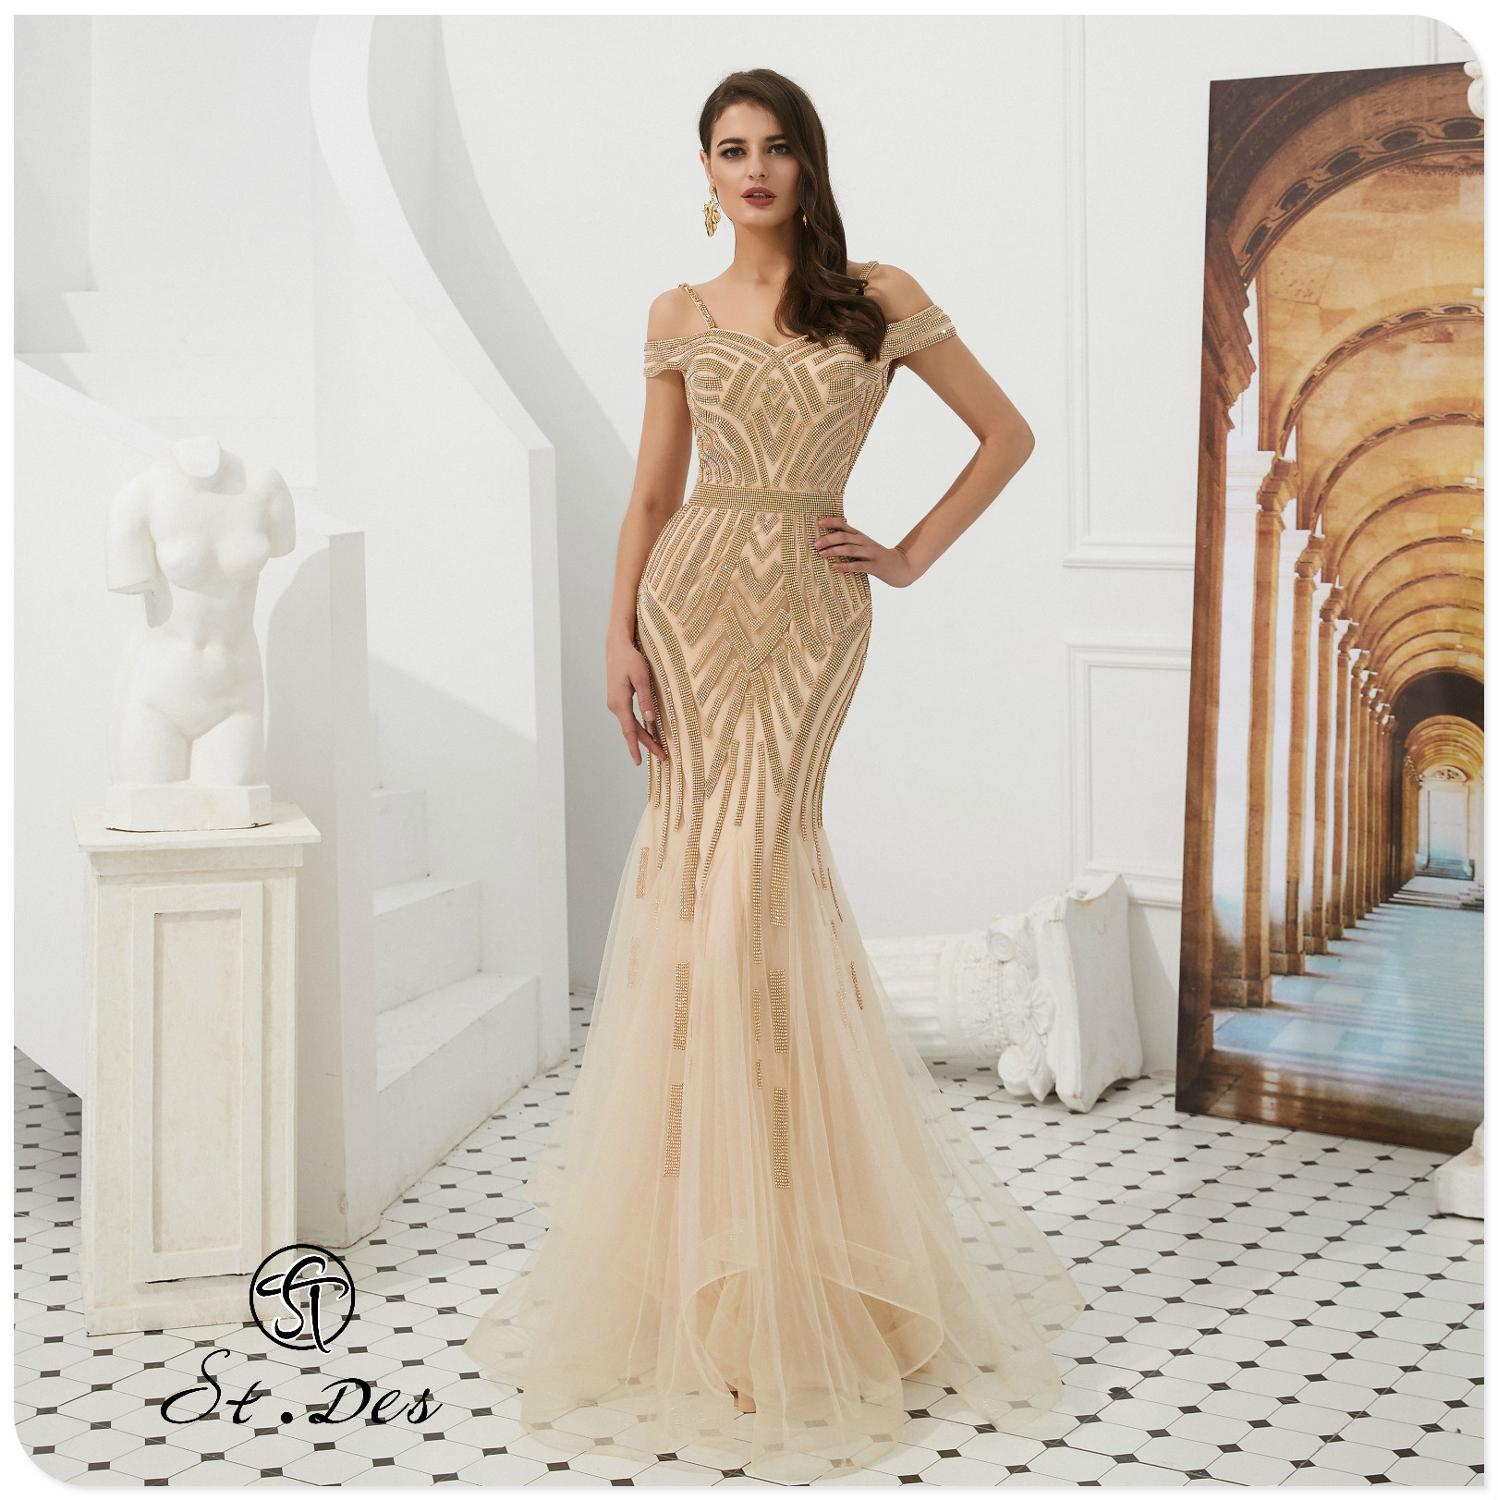 NEW 2020 St.Des Mermaid Boat Neck Russian Champagne Beading Mid-sleeve Designer Floor Length Evening Dress Party Dress